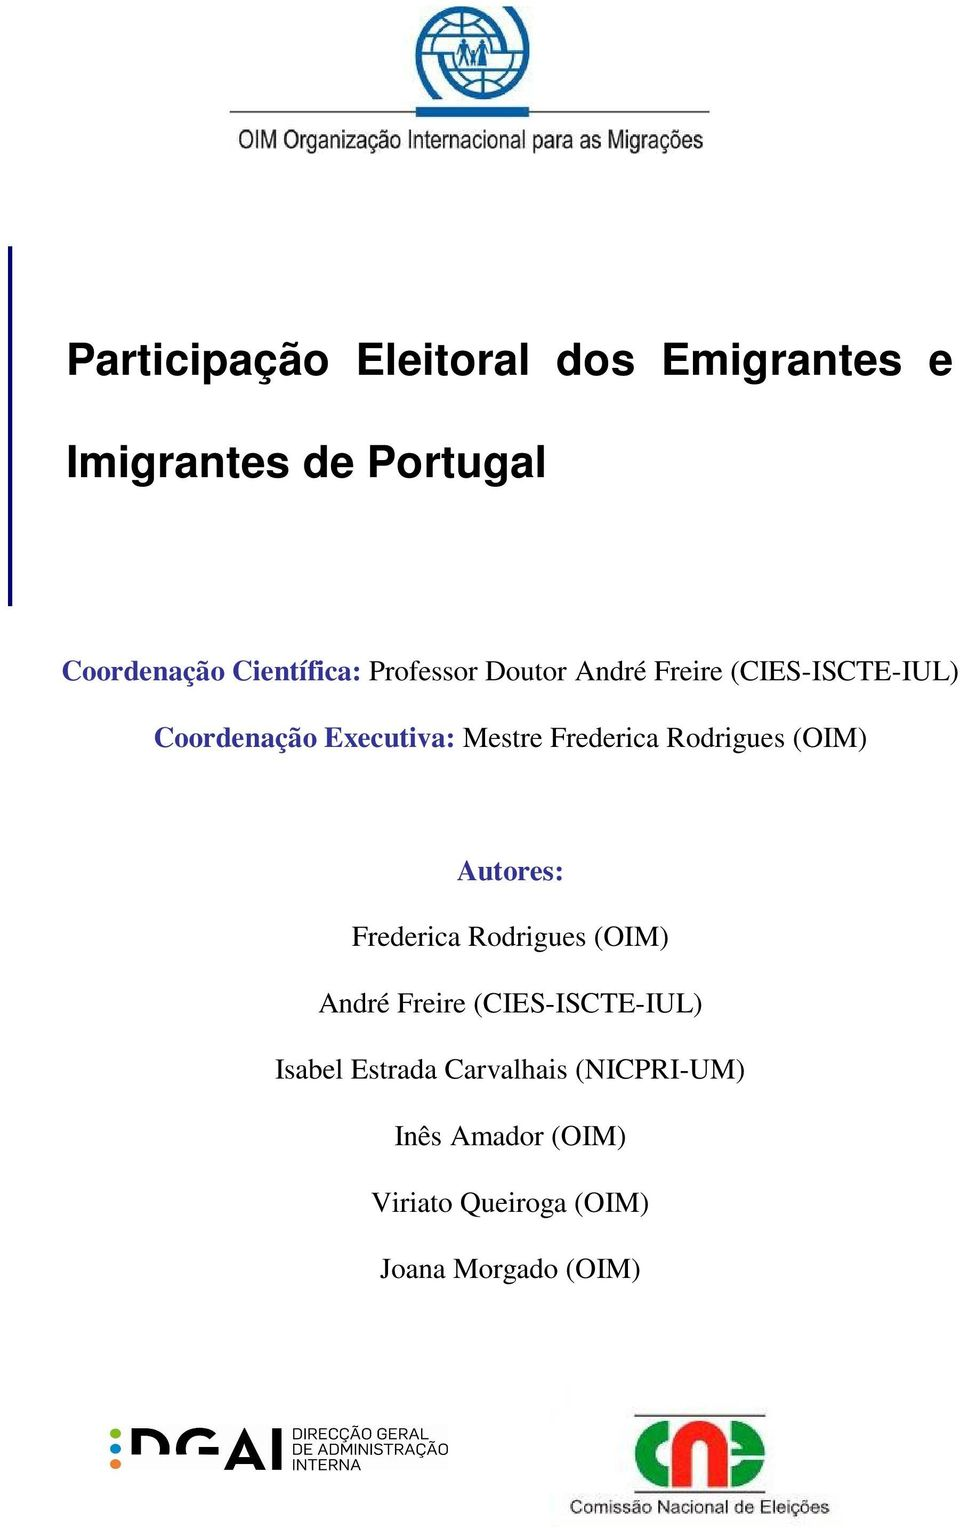 Rodrigues (OIM) Autores: Frederica Rodrigues (OIM) André Freire (CIES-ISCTE-IUL) Isabel